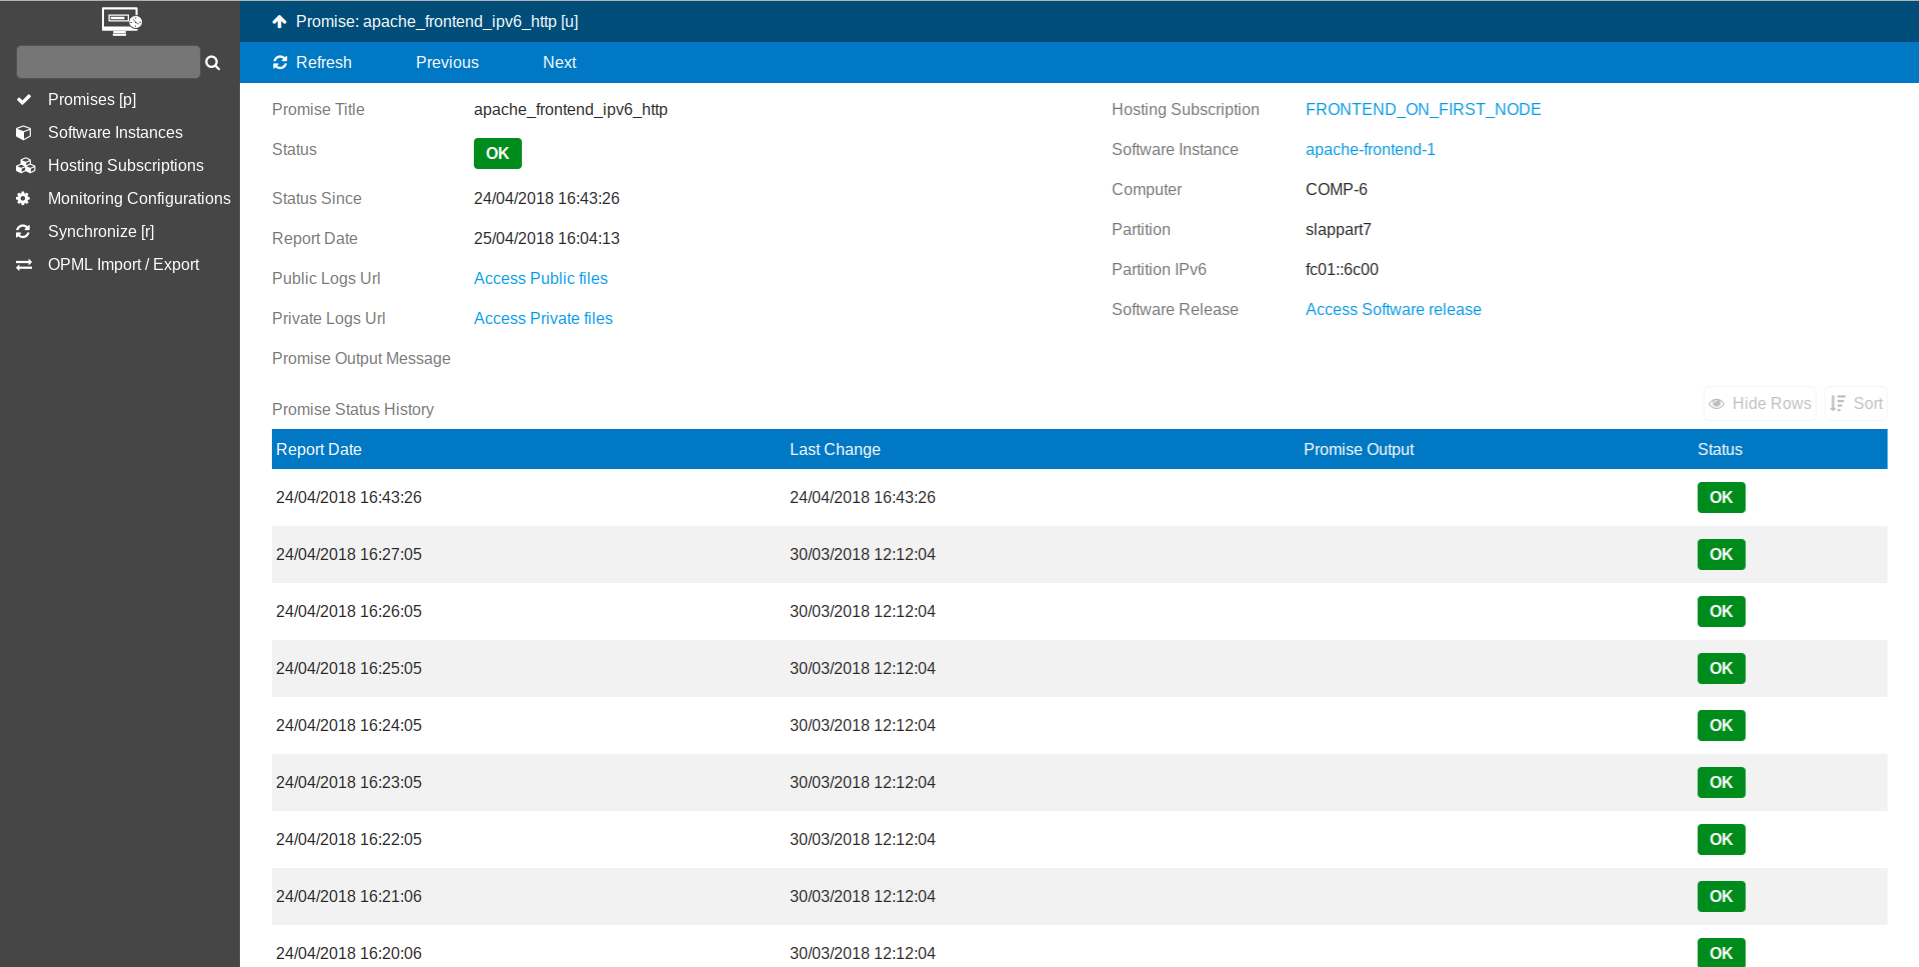 Monitor Interface - Software Instance Promise History